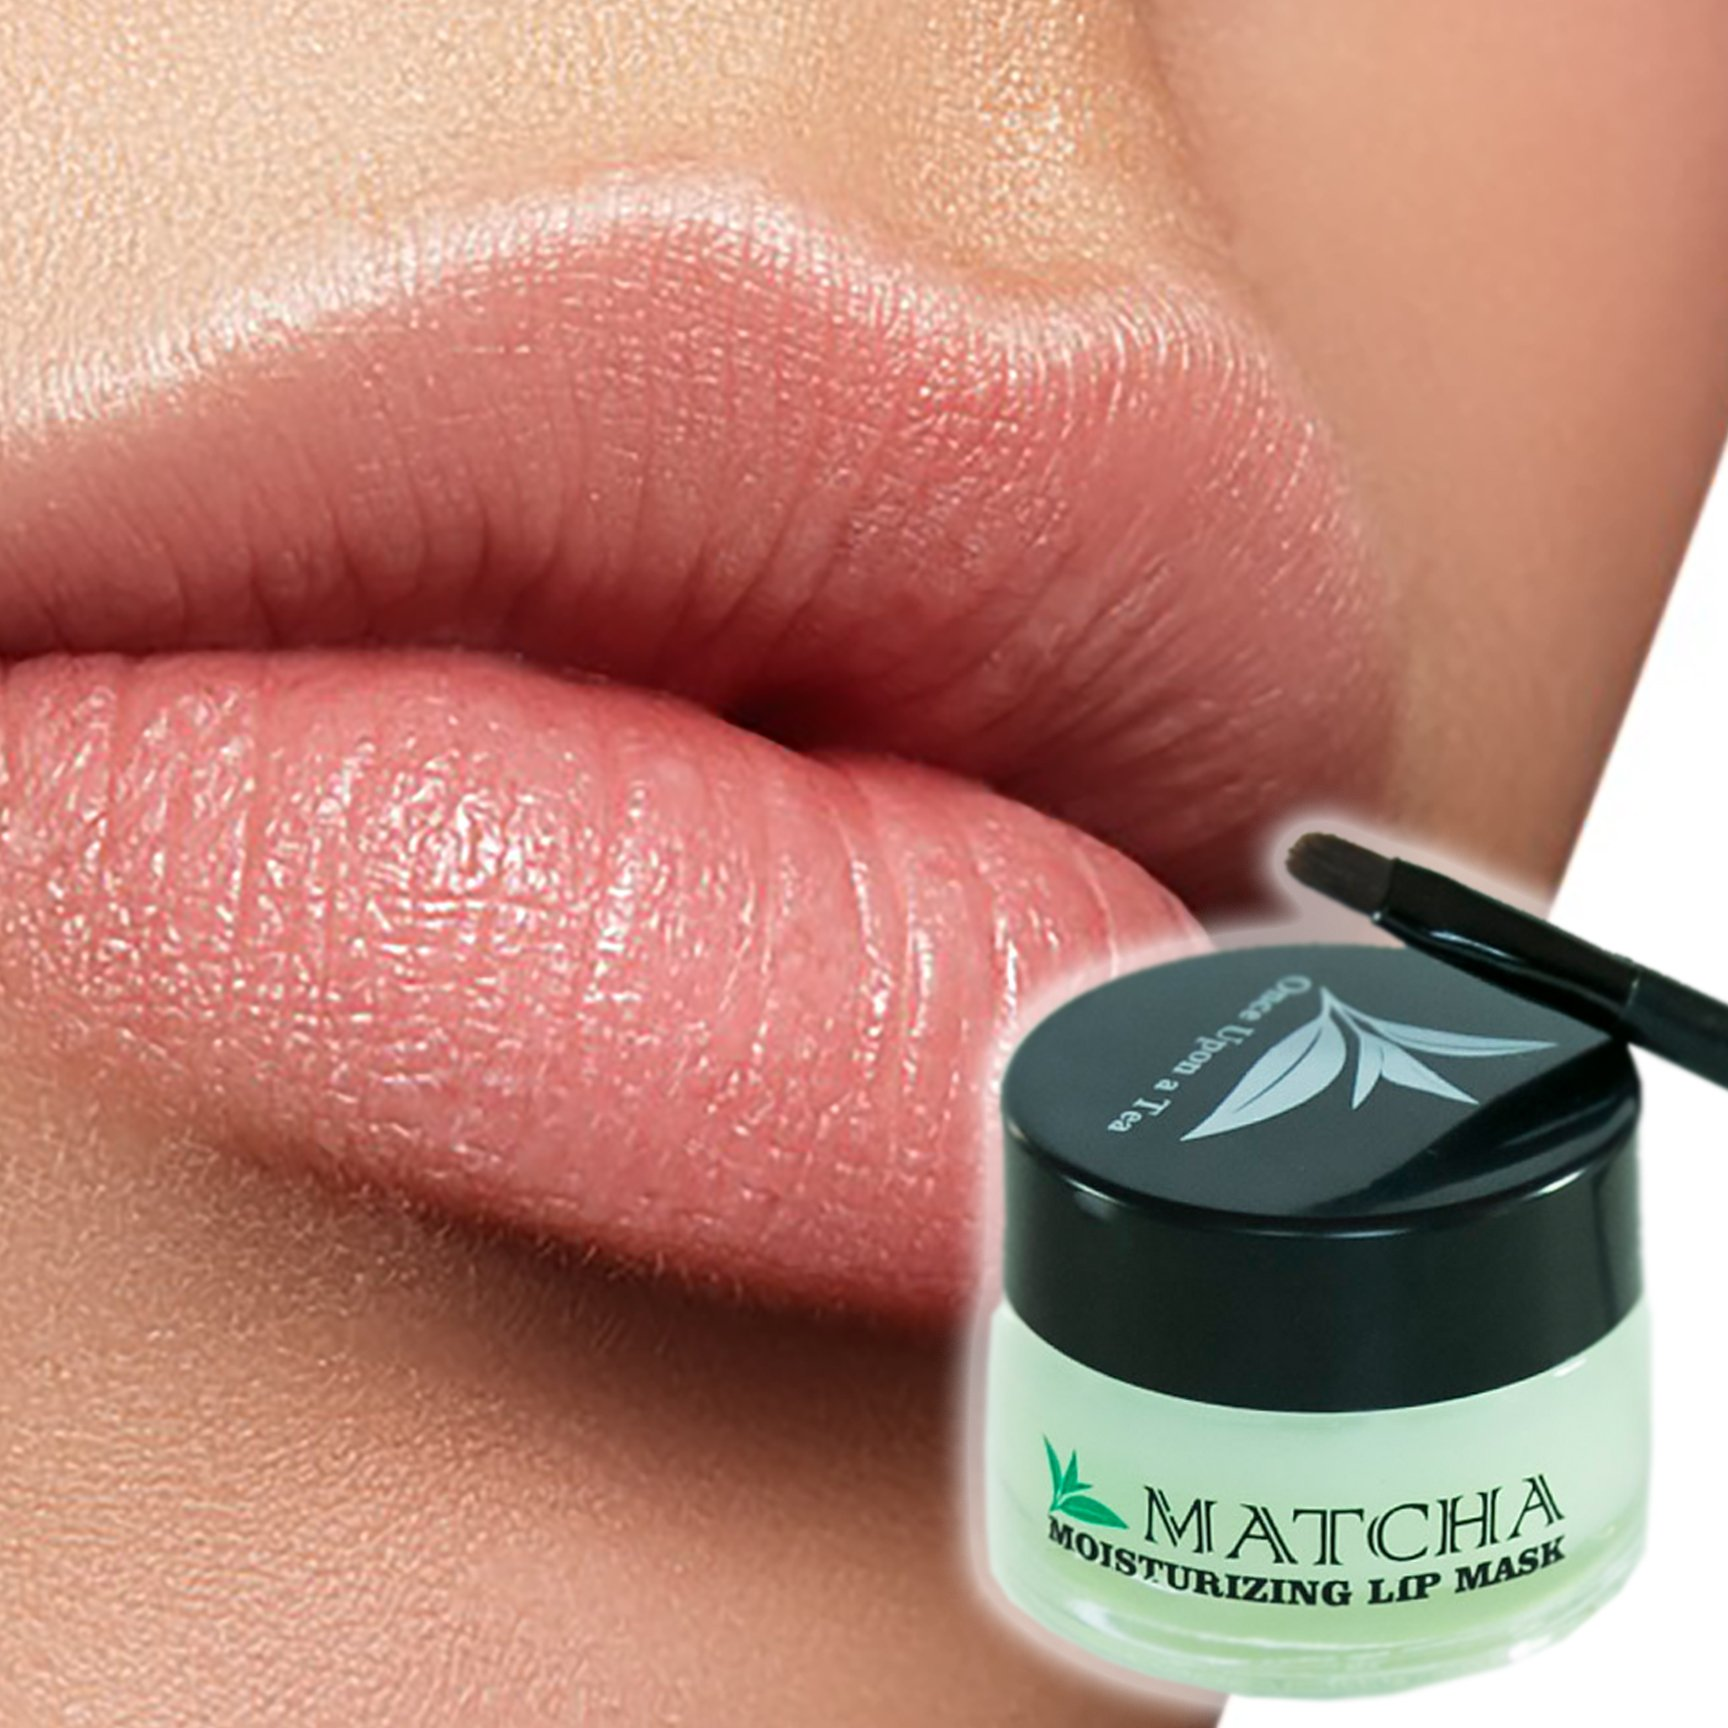 Moisturizing Green Tea Matcha Sleeping Lip Mask Balm, Younger Looking Lips Overnight, Best Solution For Chapped And Cracked Lips, Unique Formula And Power Benefits Of Green Tea by Once Upon A Tea